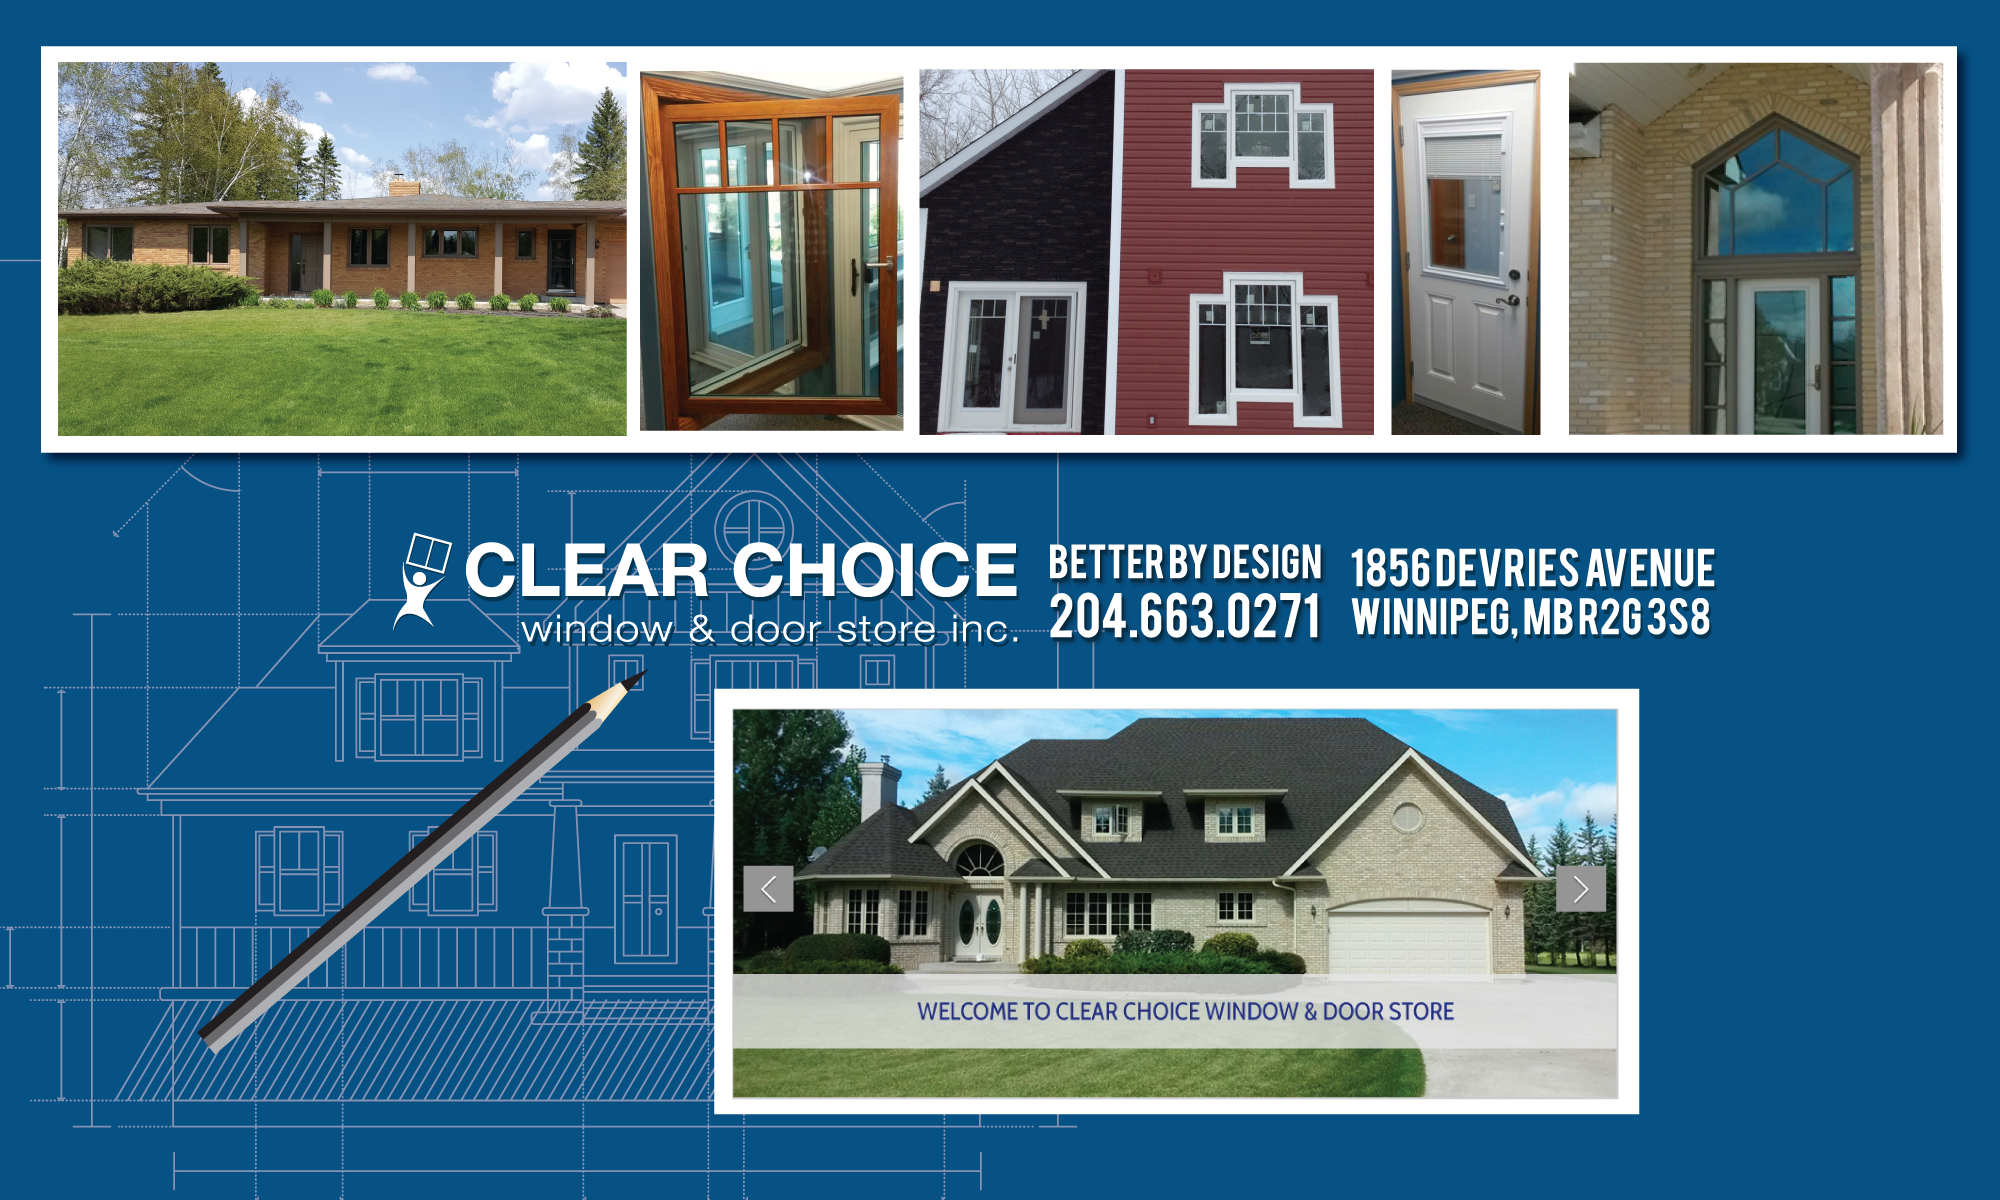 Clear Choice Window & Door